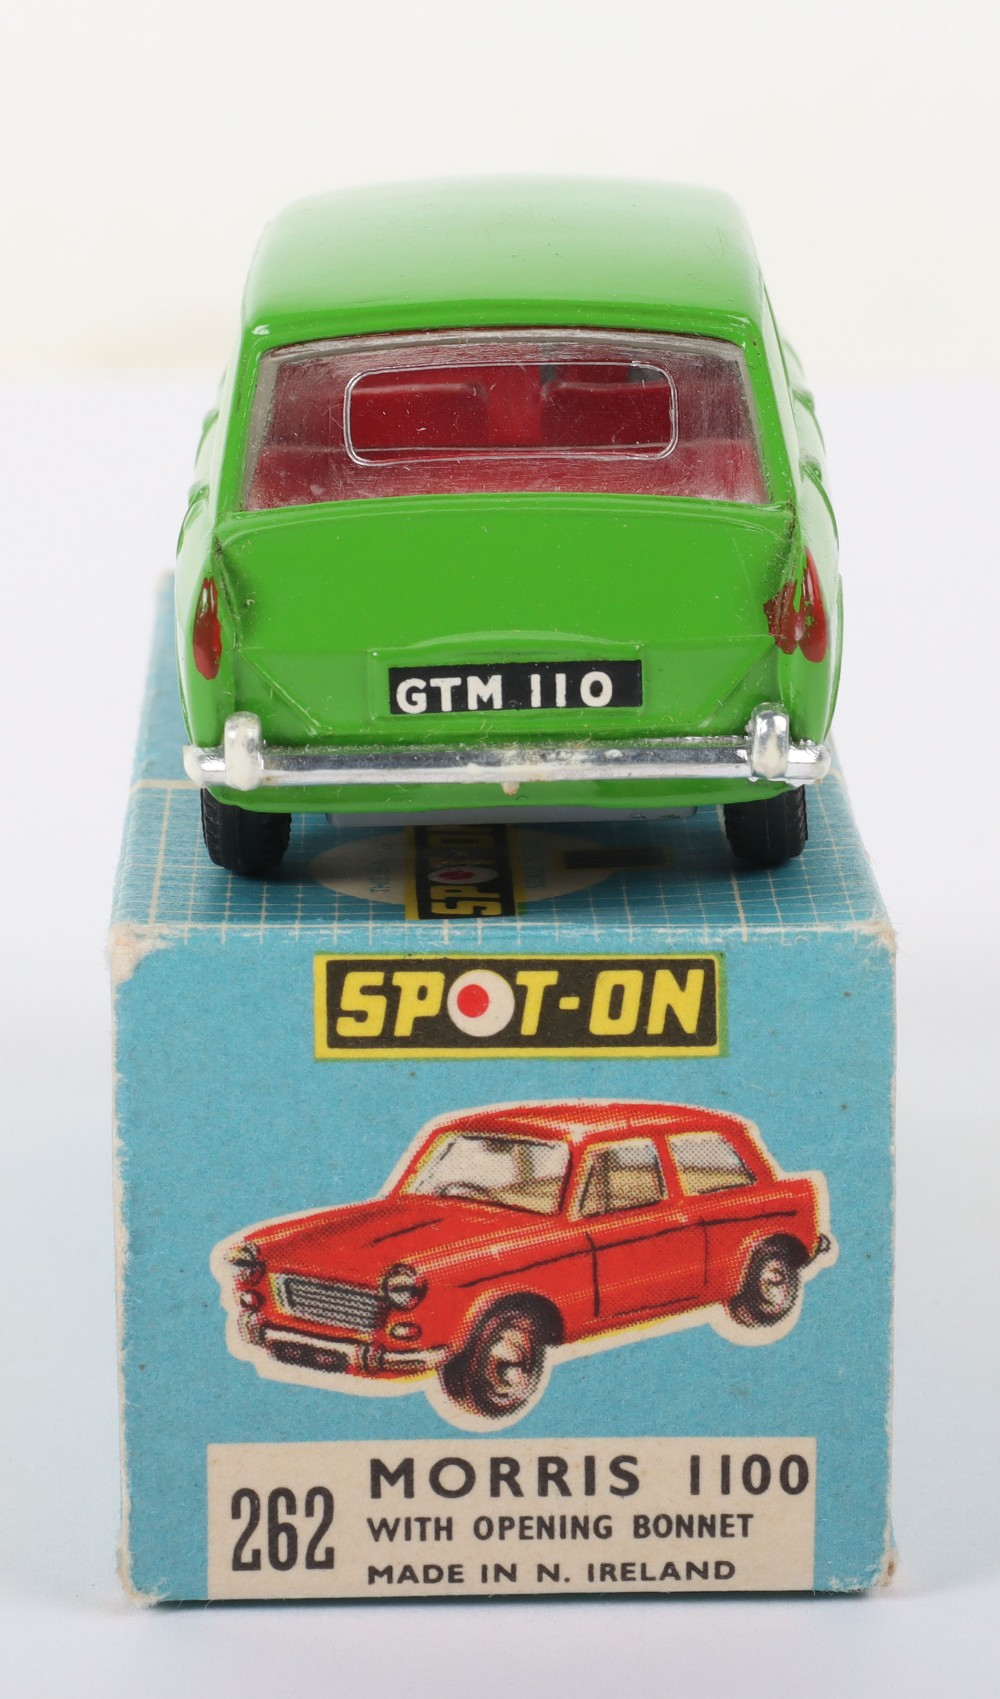 Triang Spot-On Model 262 Morris 1100 - Image 4 of 6